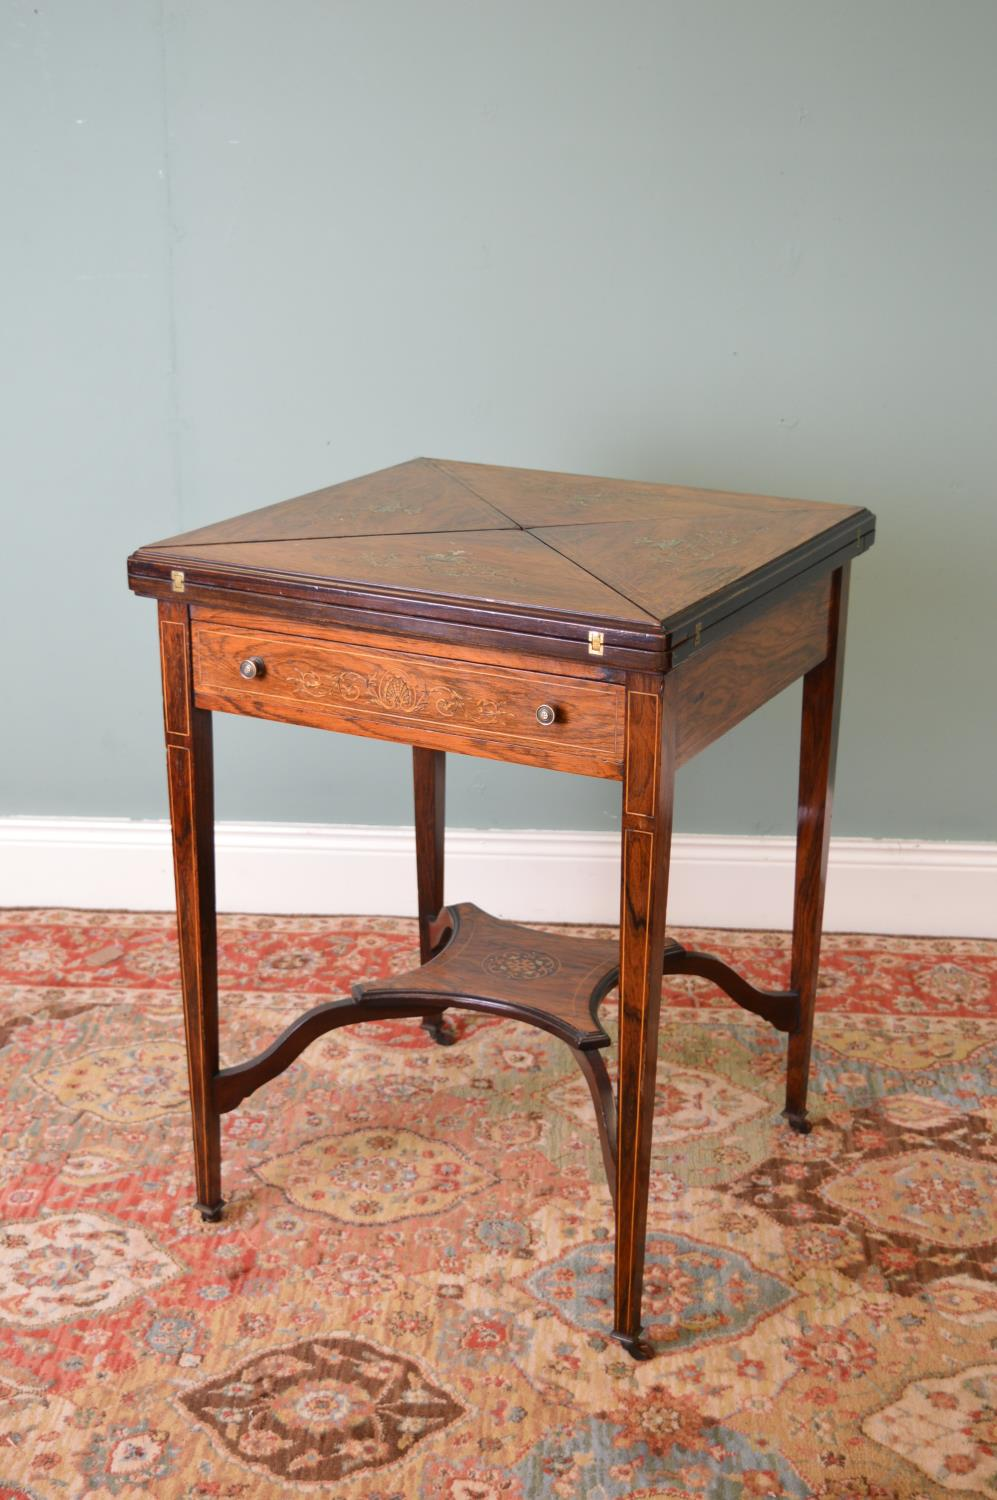 Edwardian rosewood and ivory inlaid envelope games table